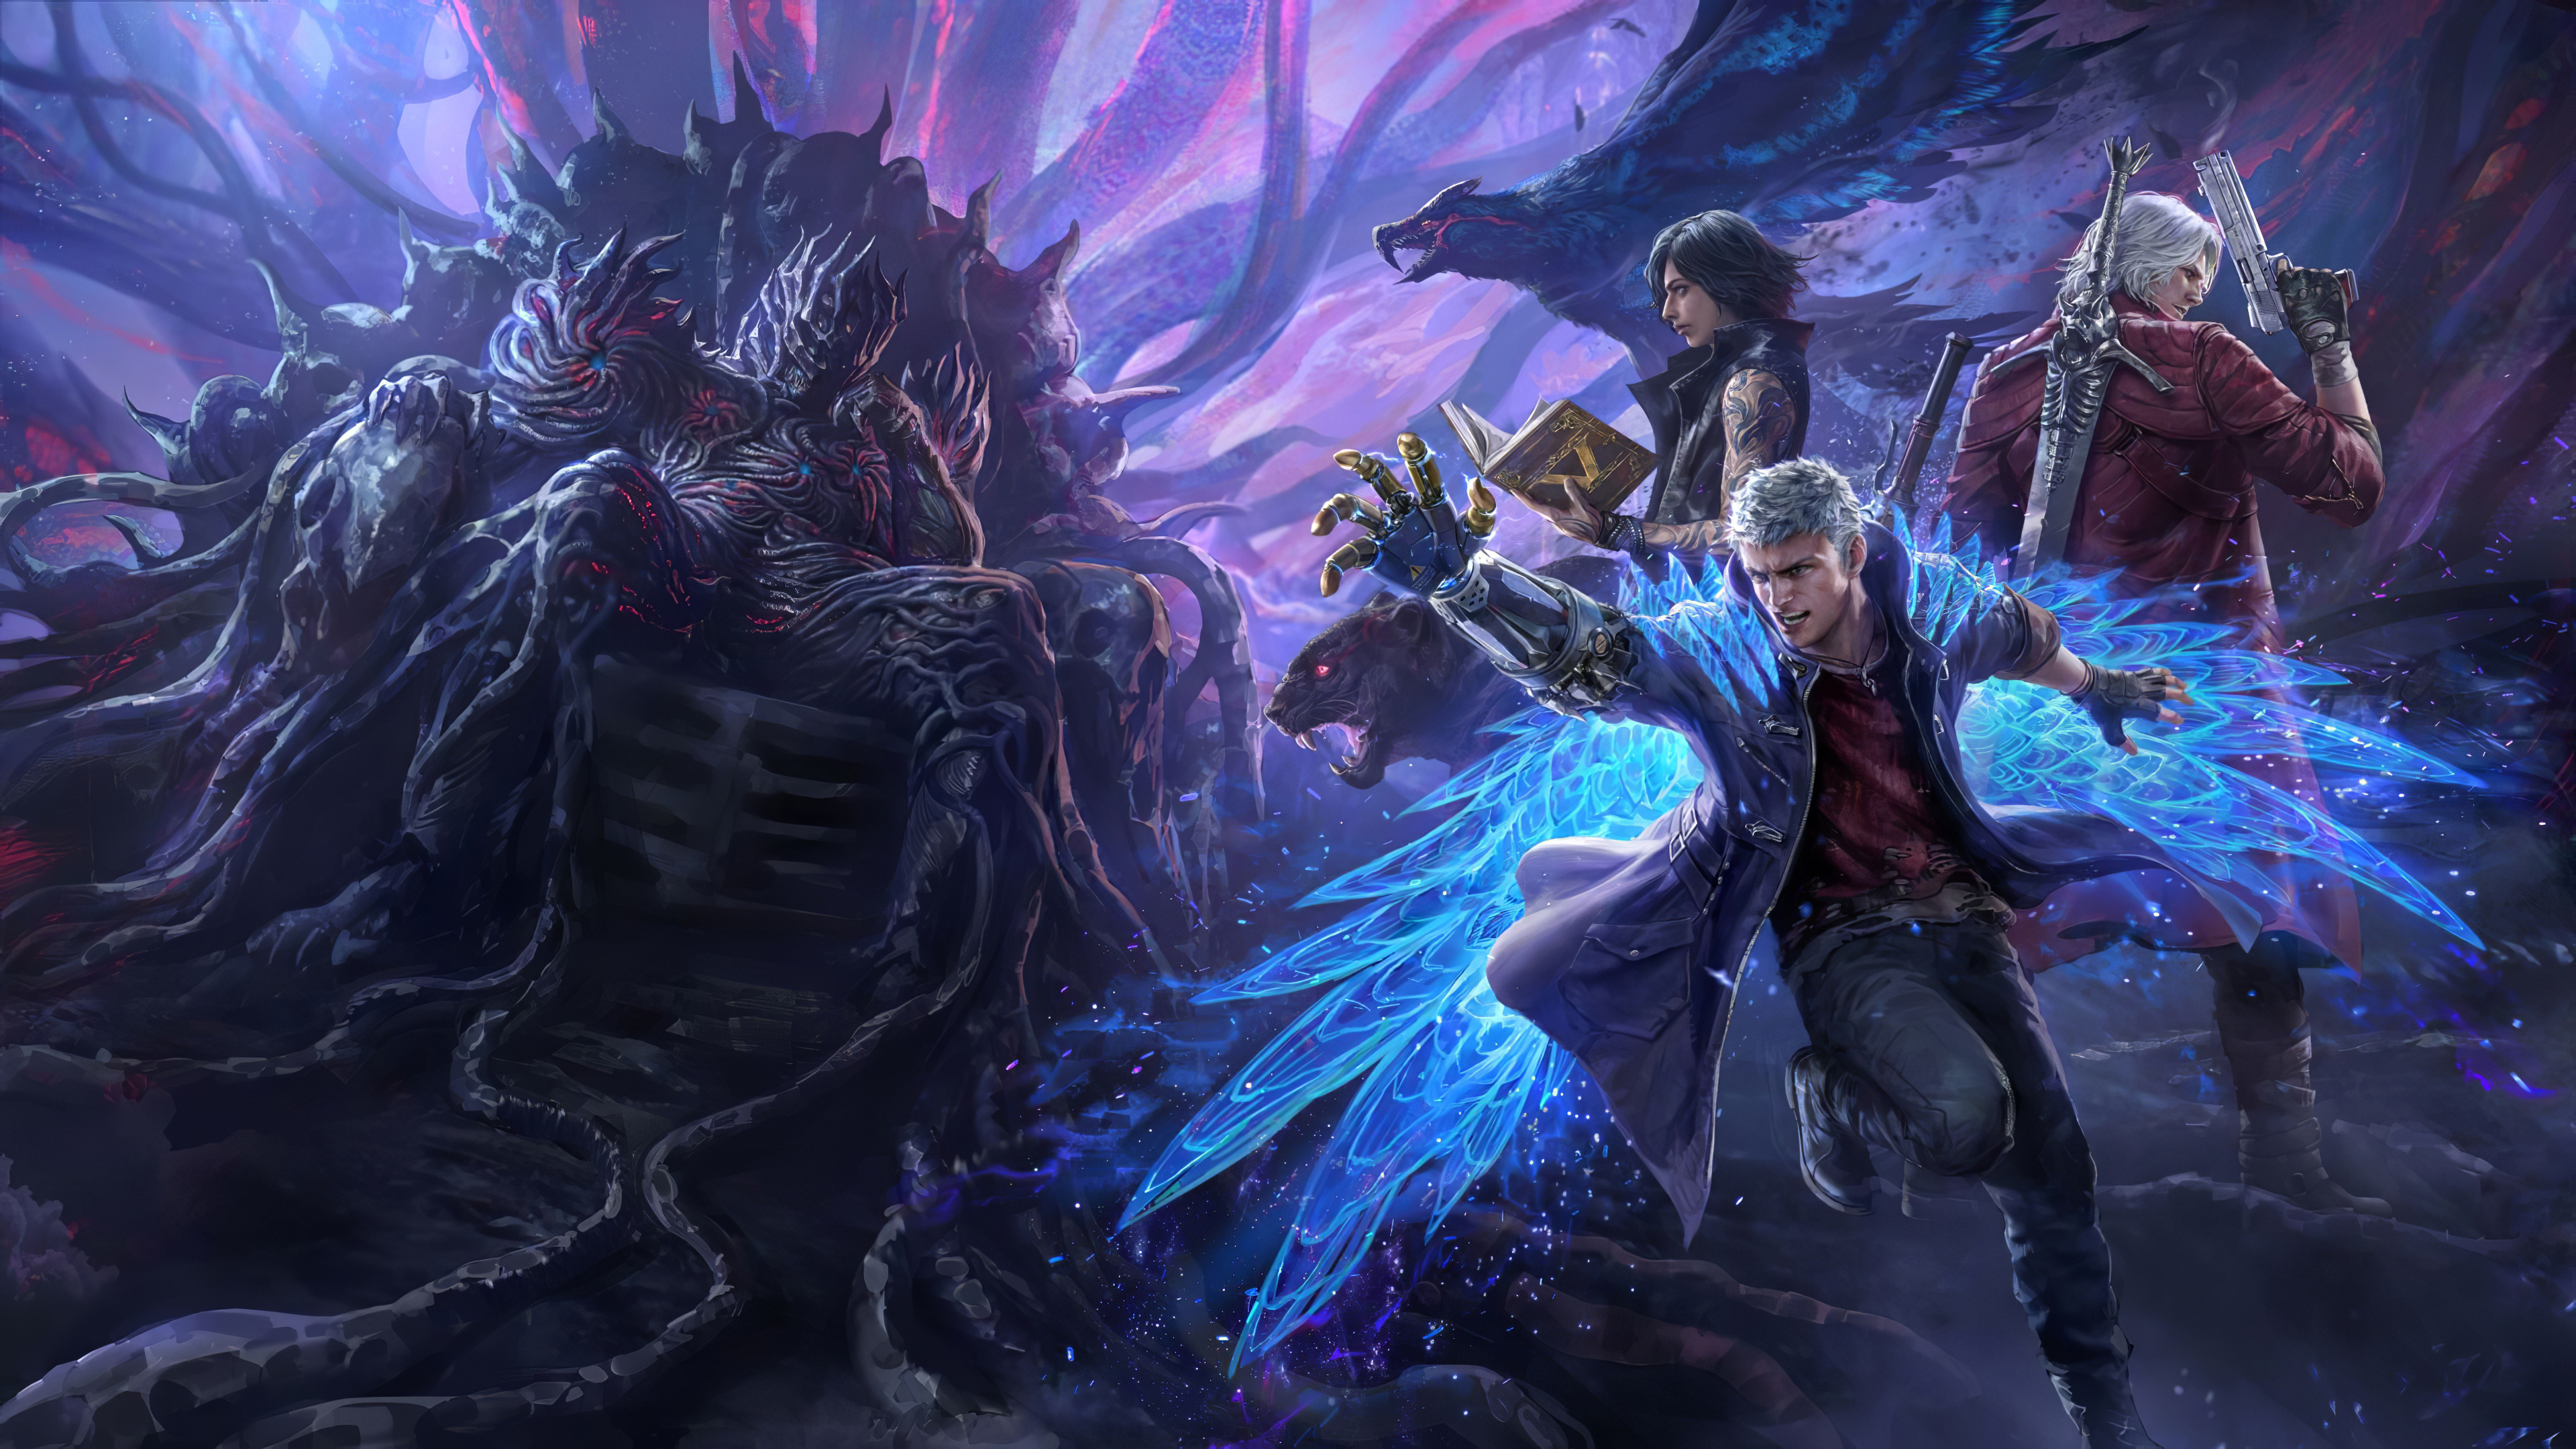 Wallpaper 4k Devil May Cry Pack Teppen Devil May Cry Pack Teppen